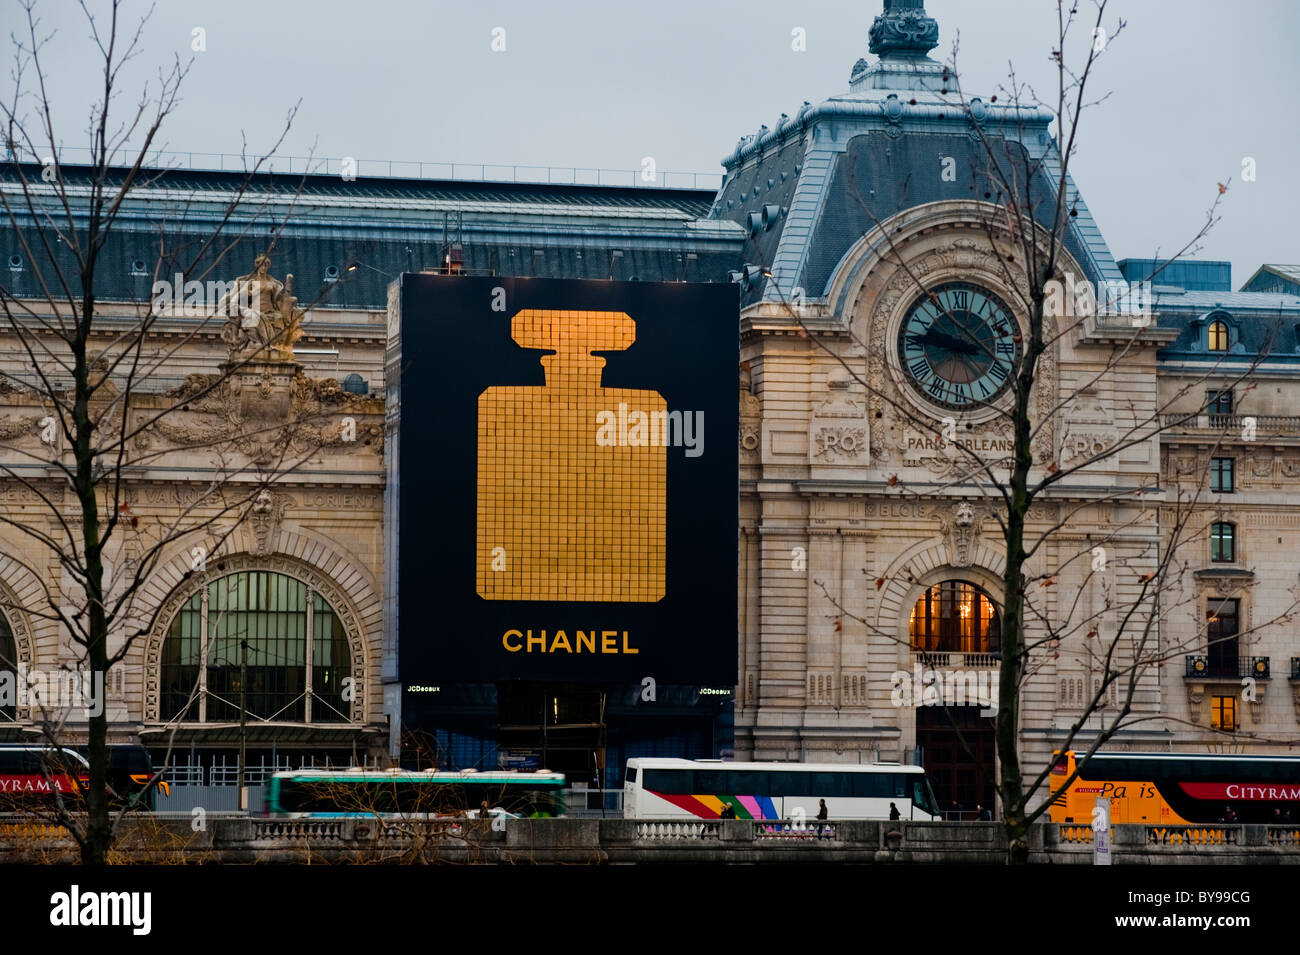 Paris france french advertising on orsay museum facade for Chanel locations in paris